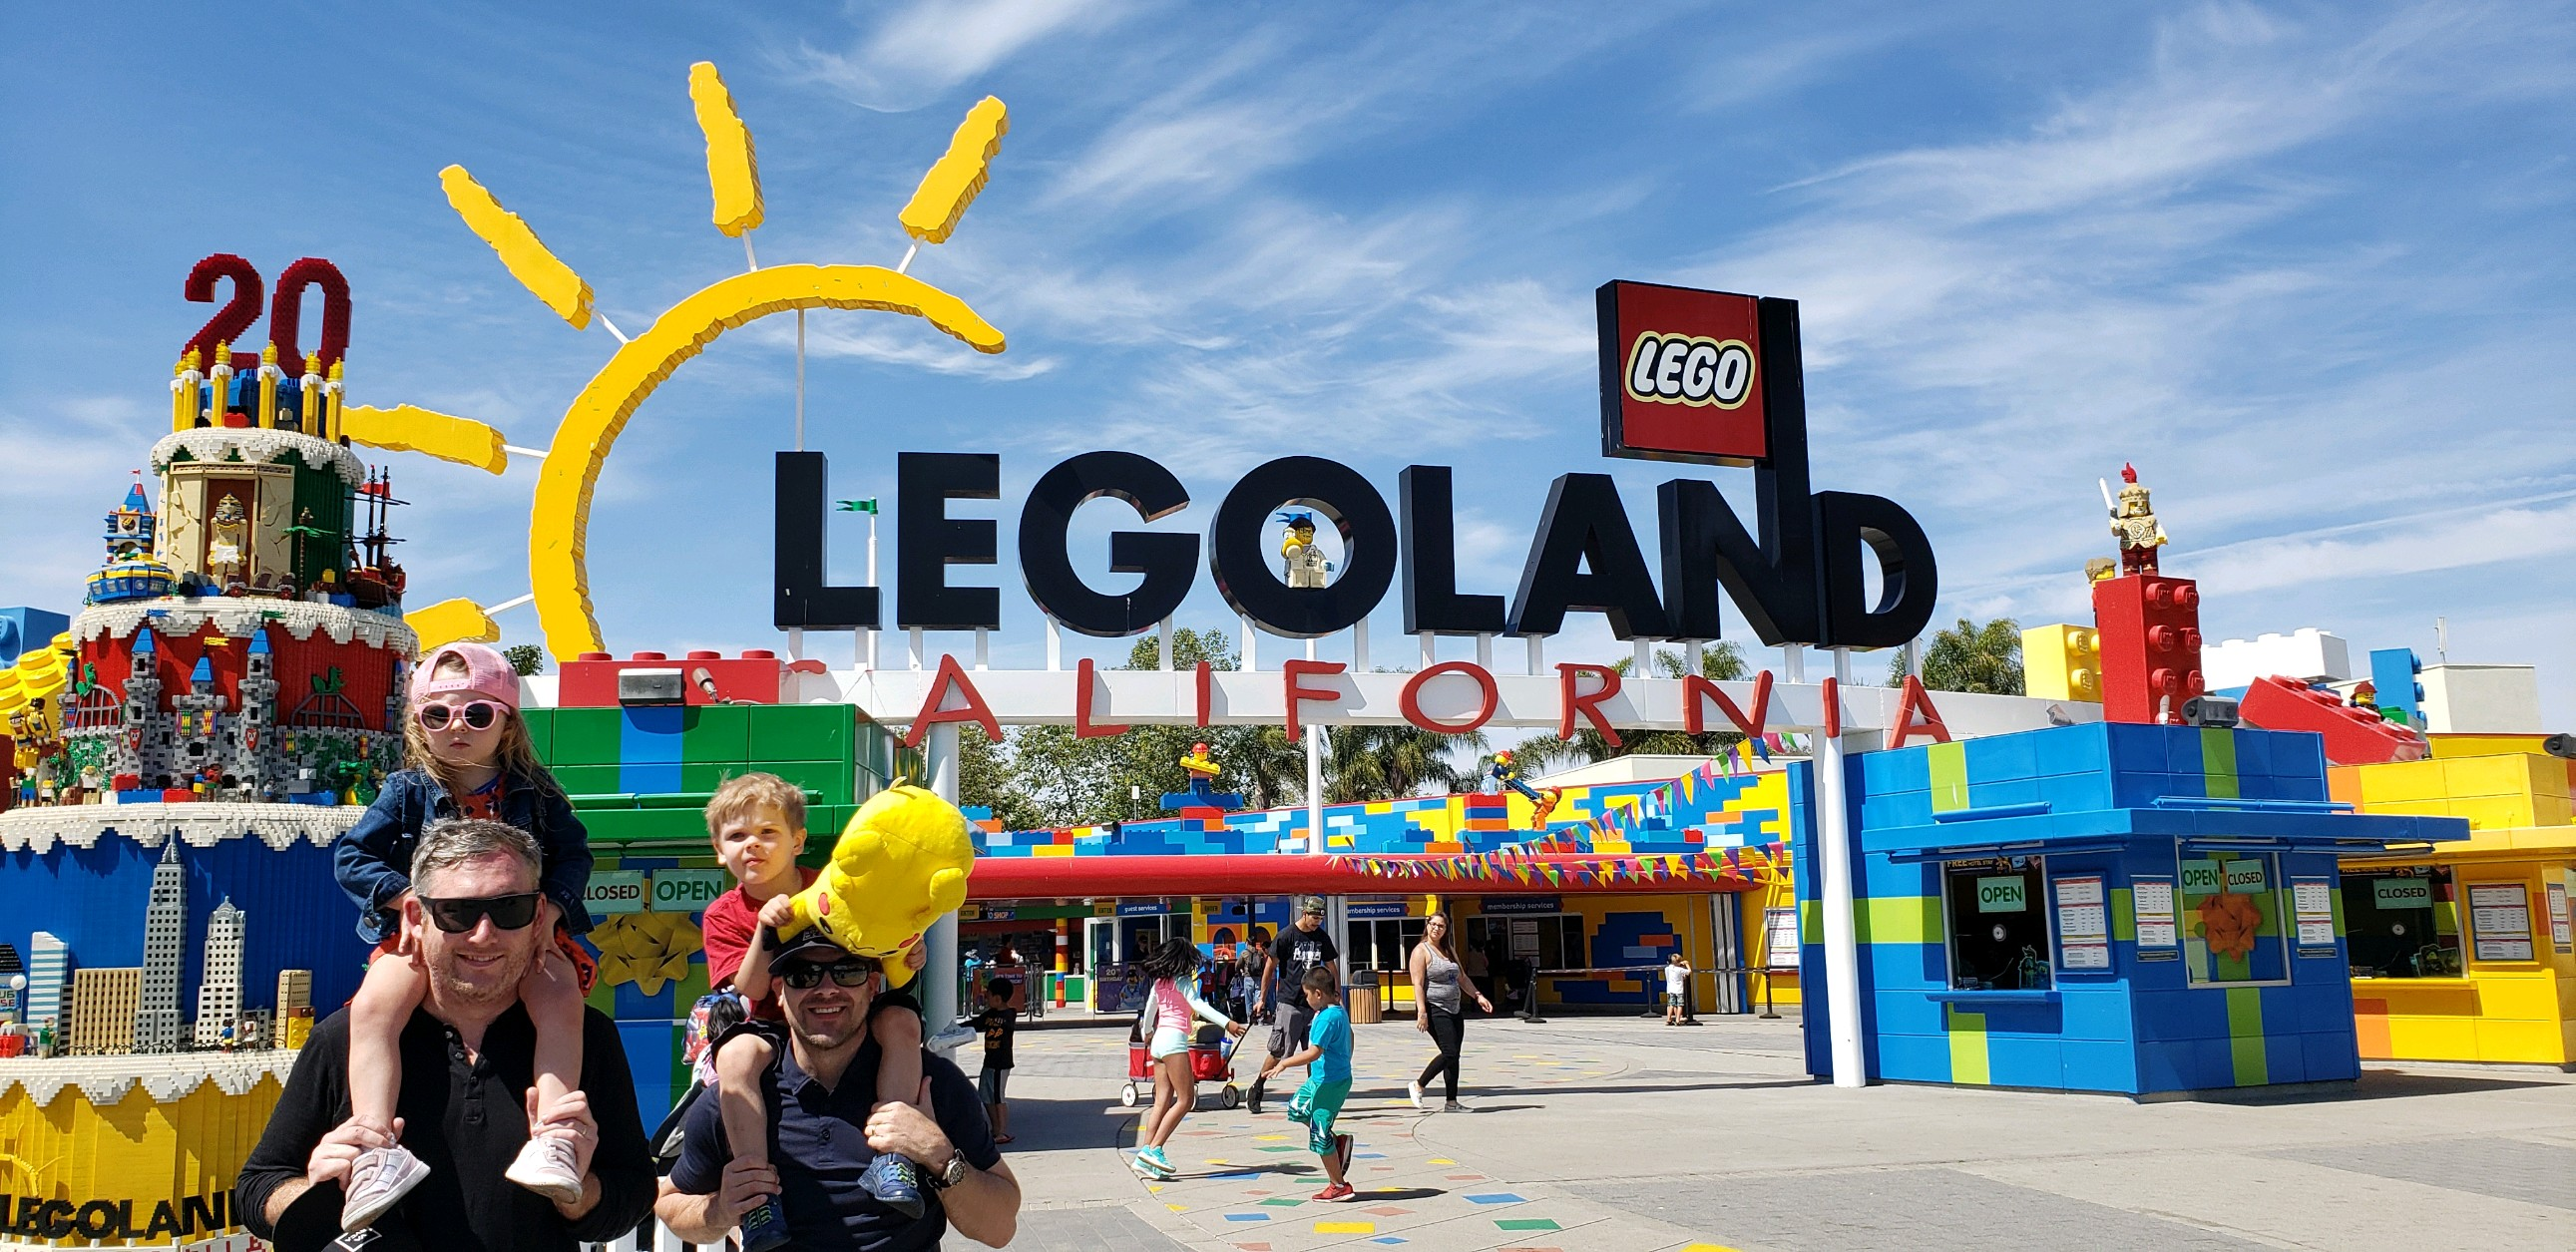 <p>Lego Land isn't just for kids - it's a trip and ultimate experience dad and the entire fam will love.{&nbsp;} {&nbsp;}It's a quick trip for Seattle based families and there is a resort on-site. (Image: Kate Neidigh){&nbsp;}</p><p></p>